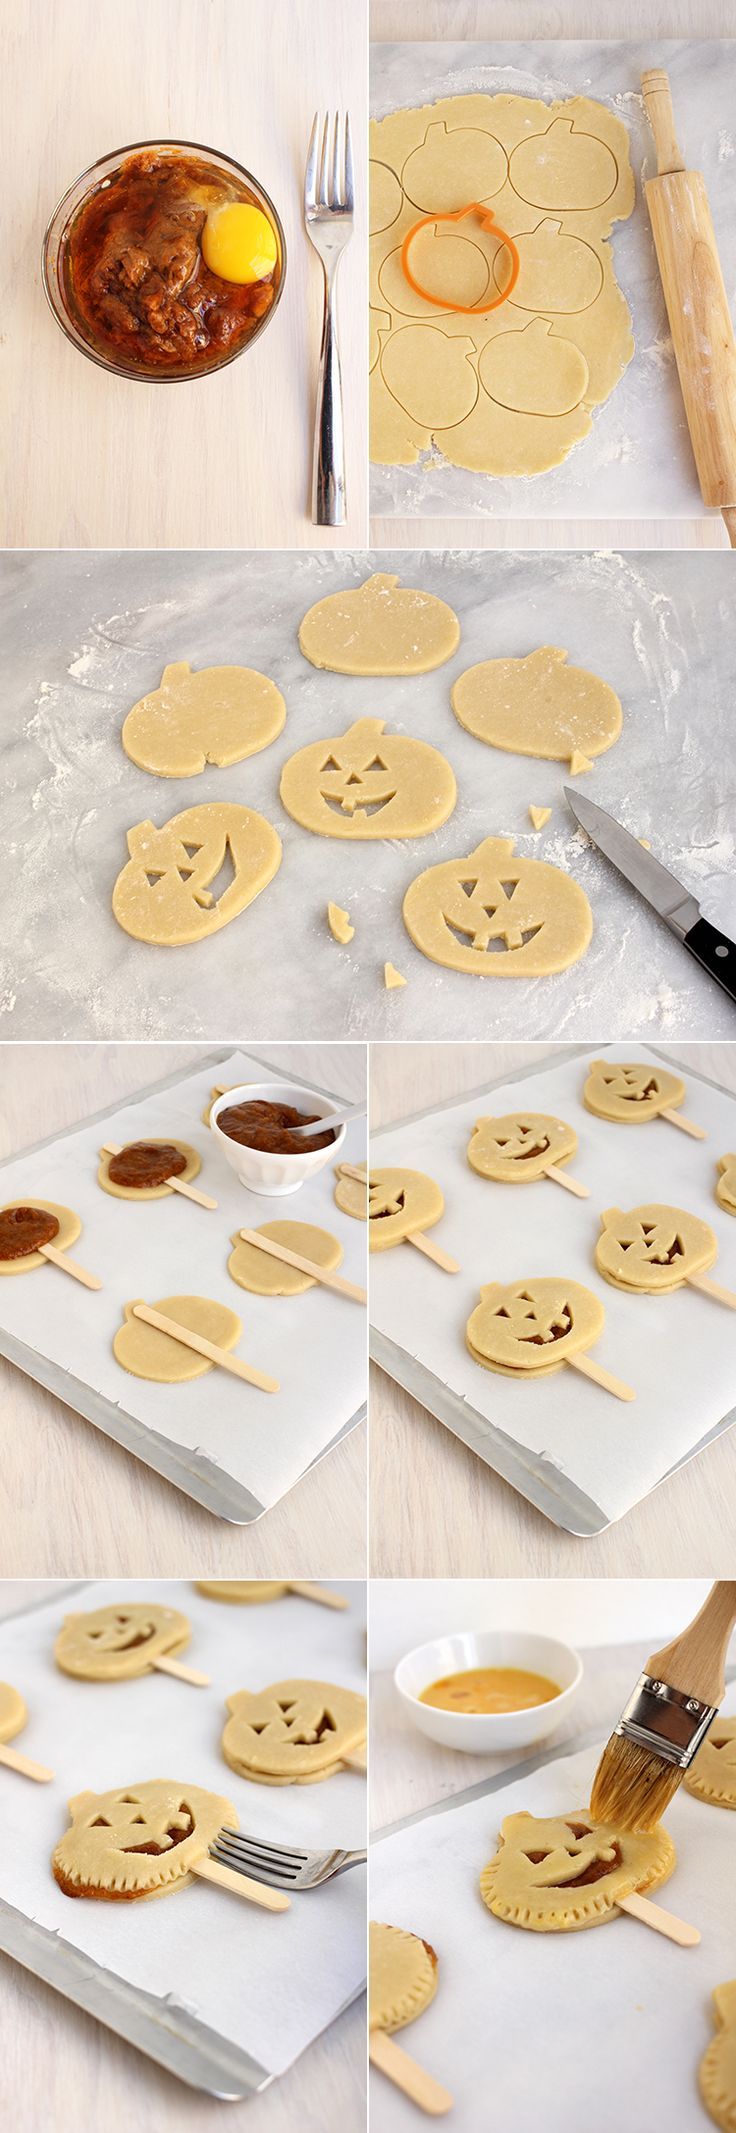 These pumpkin pie pops are PERFECT for Thanksgiving! Just leave out the face!!! xo